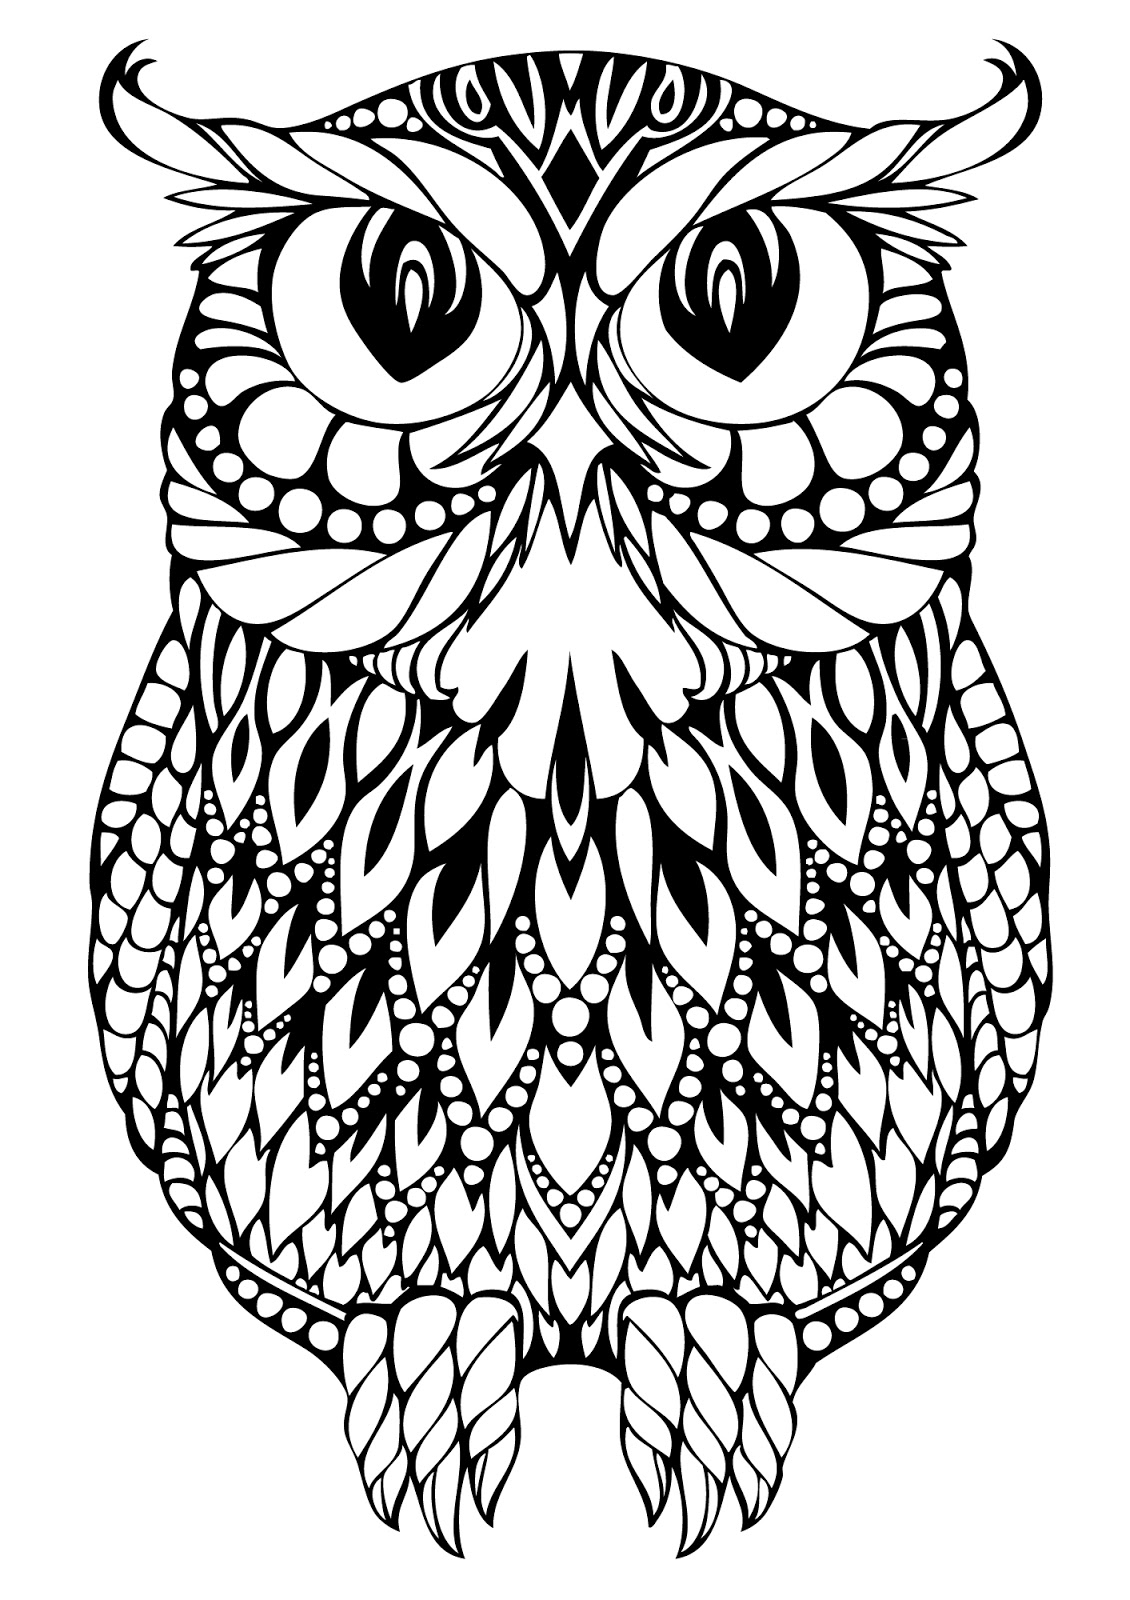 coloring sheet for adults adult coloring page coloring home sheet for coloring adults